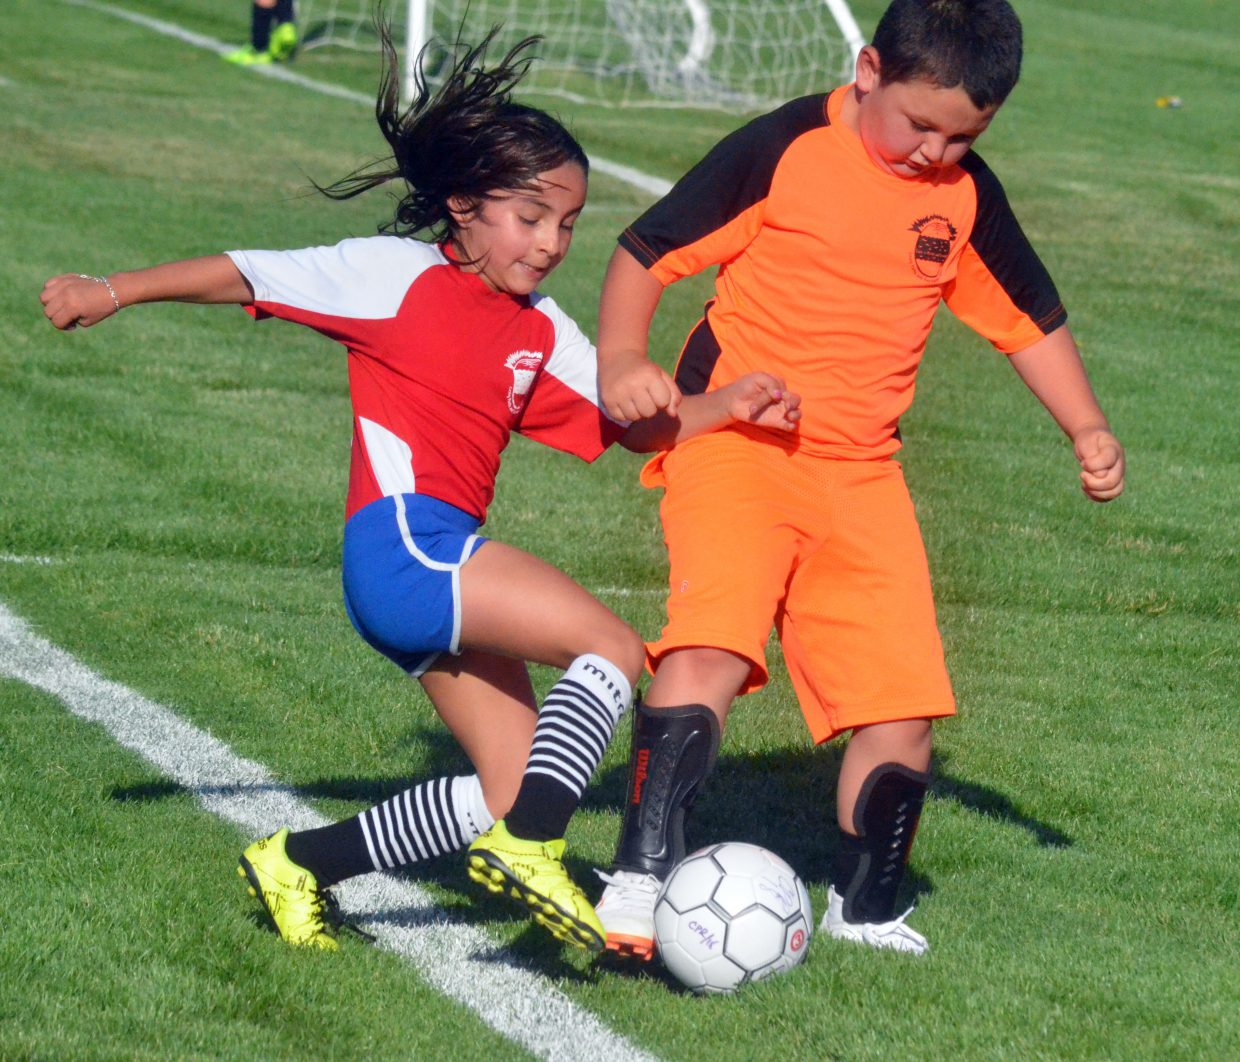 Natalia Quezada of the Fire, left, battles for the ball with Caleb Bennett of the Earthquakes during a Craig Parks and Recreation 8 and under soccer game. The league finishes its season Thursday.